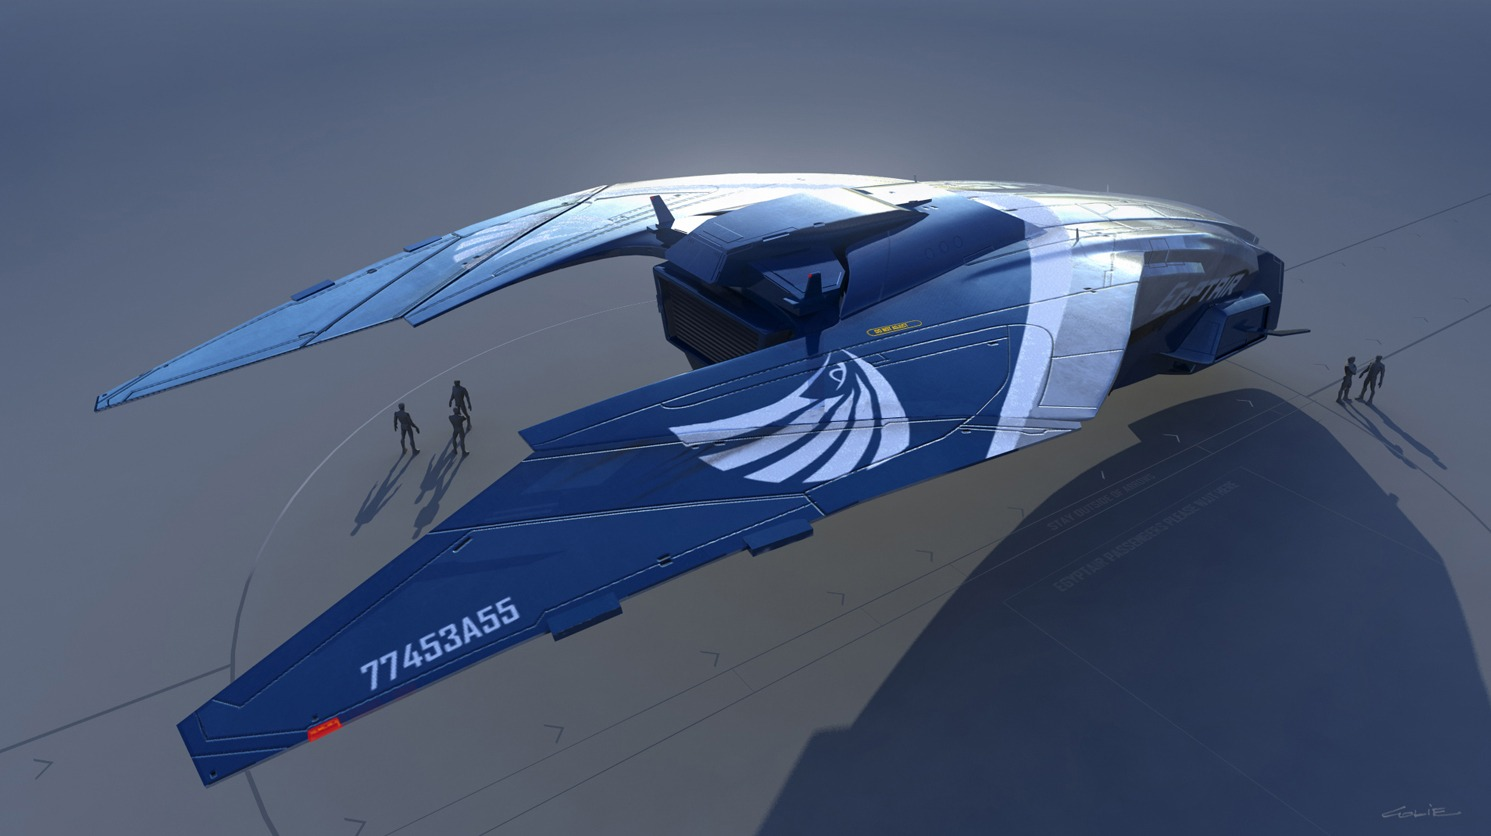 1491x836_14174_EgyptAirShuttle_3d_sci_fi_spaceship_picture ...